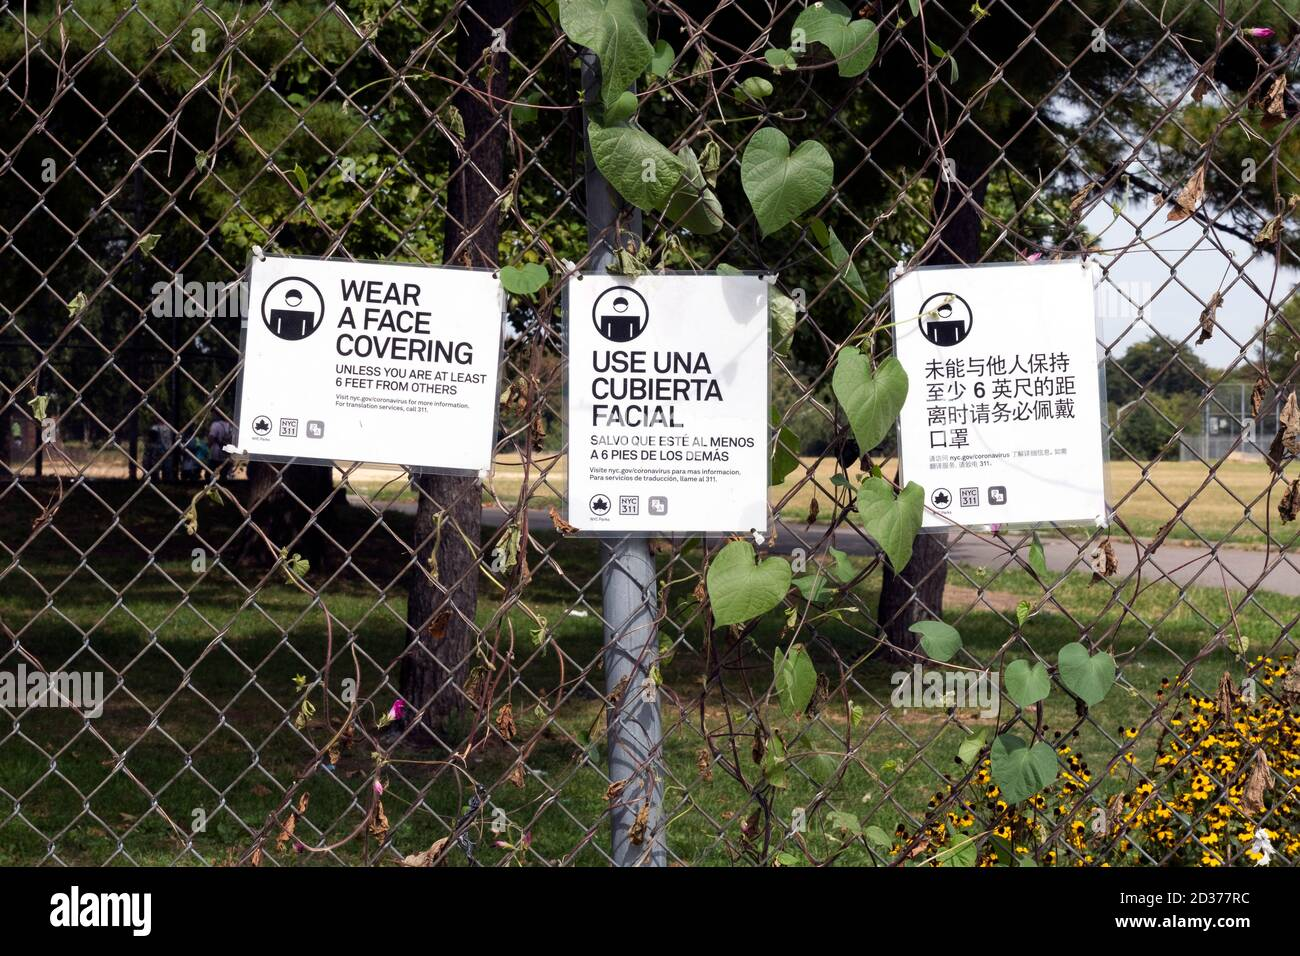 English, Spanish & Korean signs about the rules for wearing face coverings. At Flushing Meadows Corona Park in Queens, New York City. Stock Photo